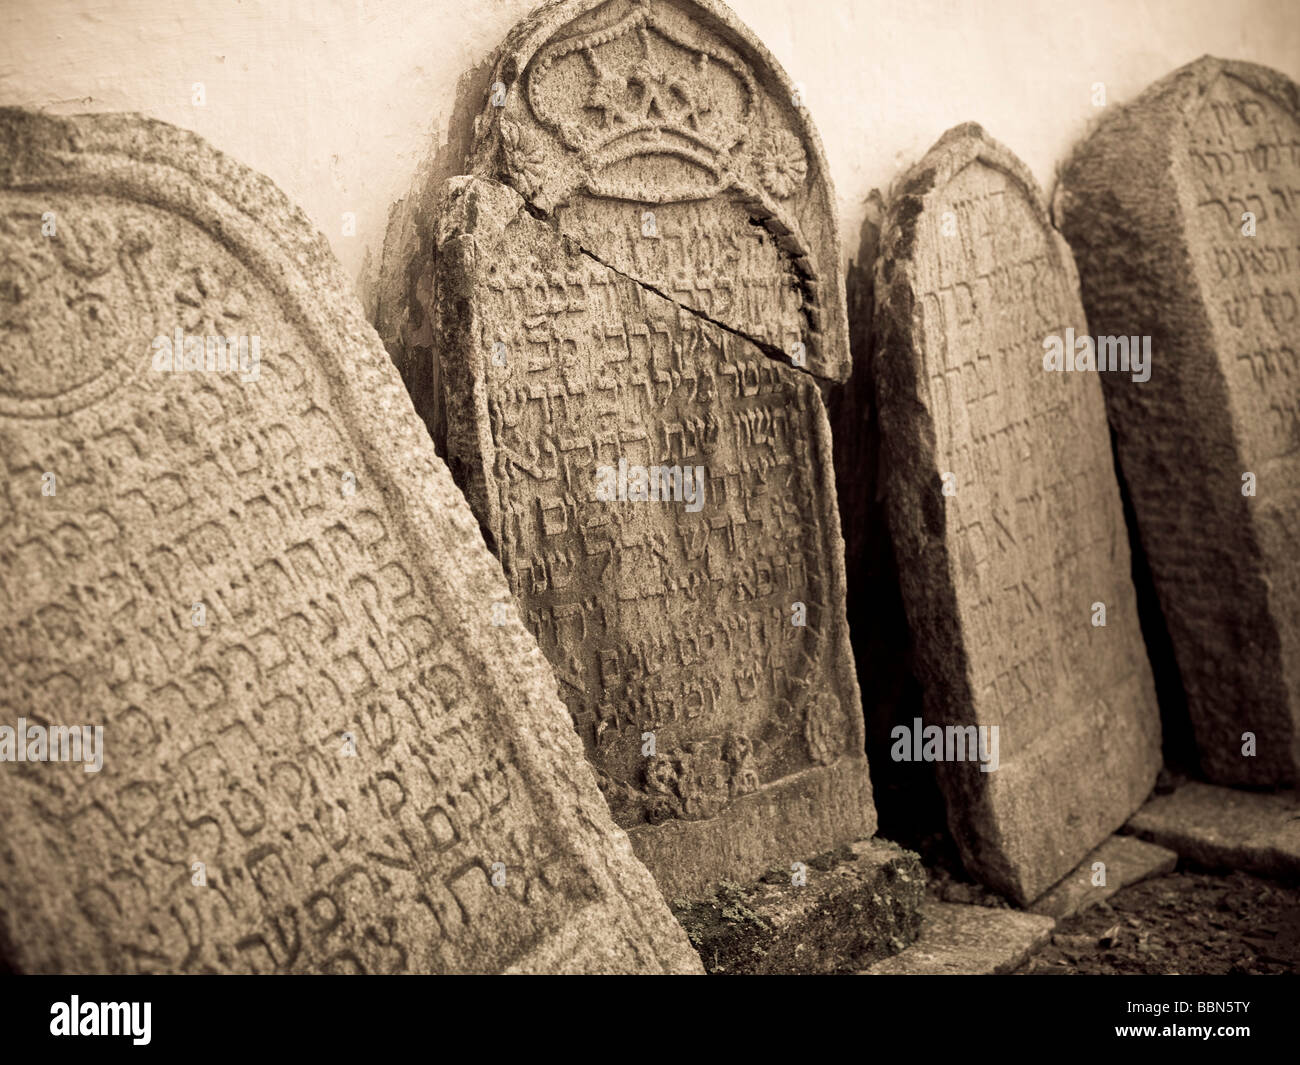 Jewtown,Cochin,India;Gravestones leaning against synagogue wall - Stock Image